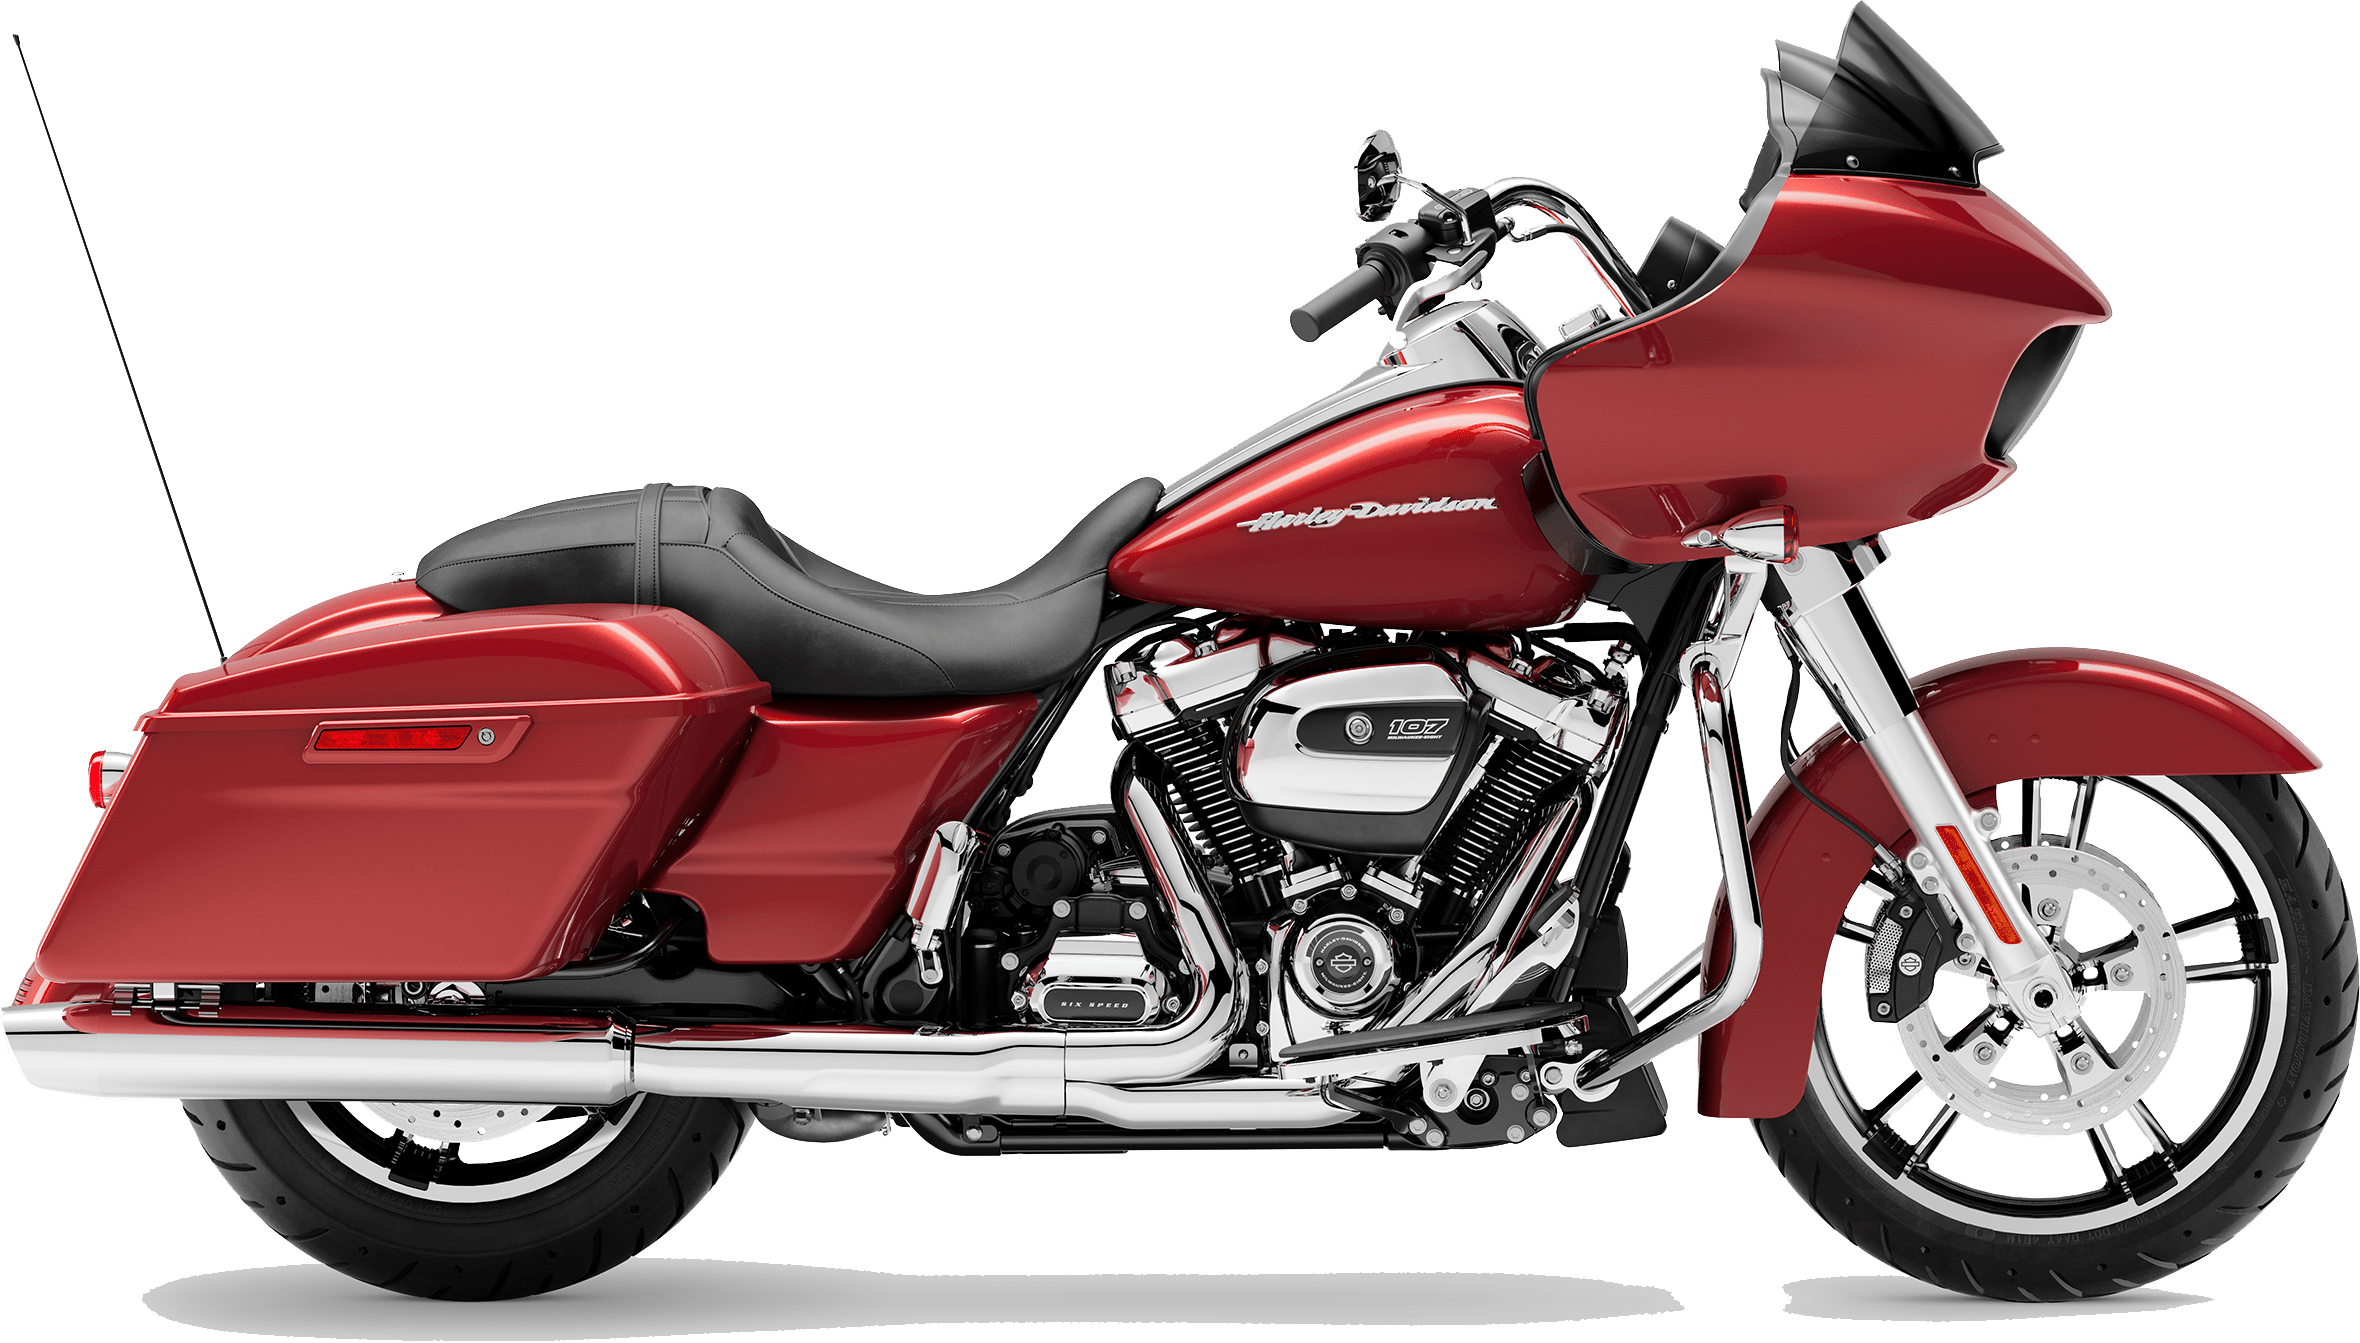 2019 Harley-Davidson H-D Touring Road Glide Wicked Red